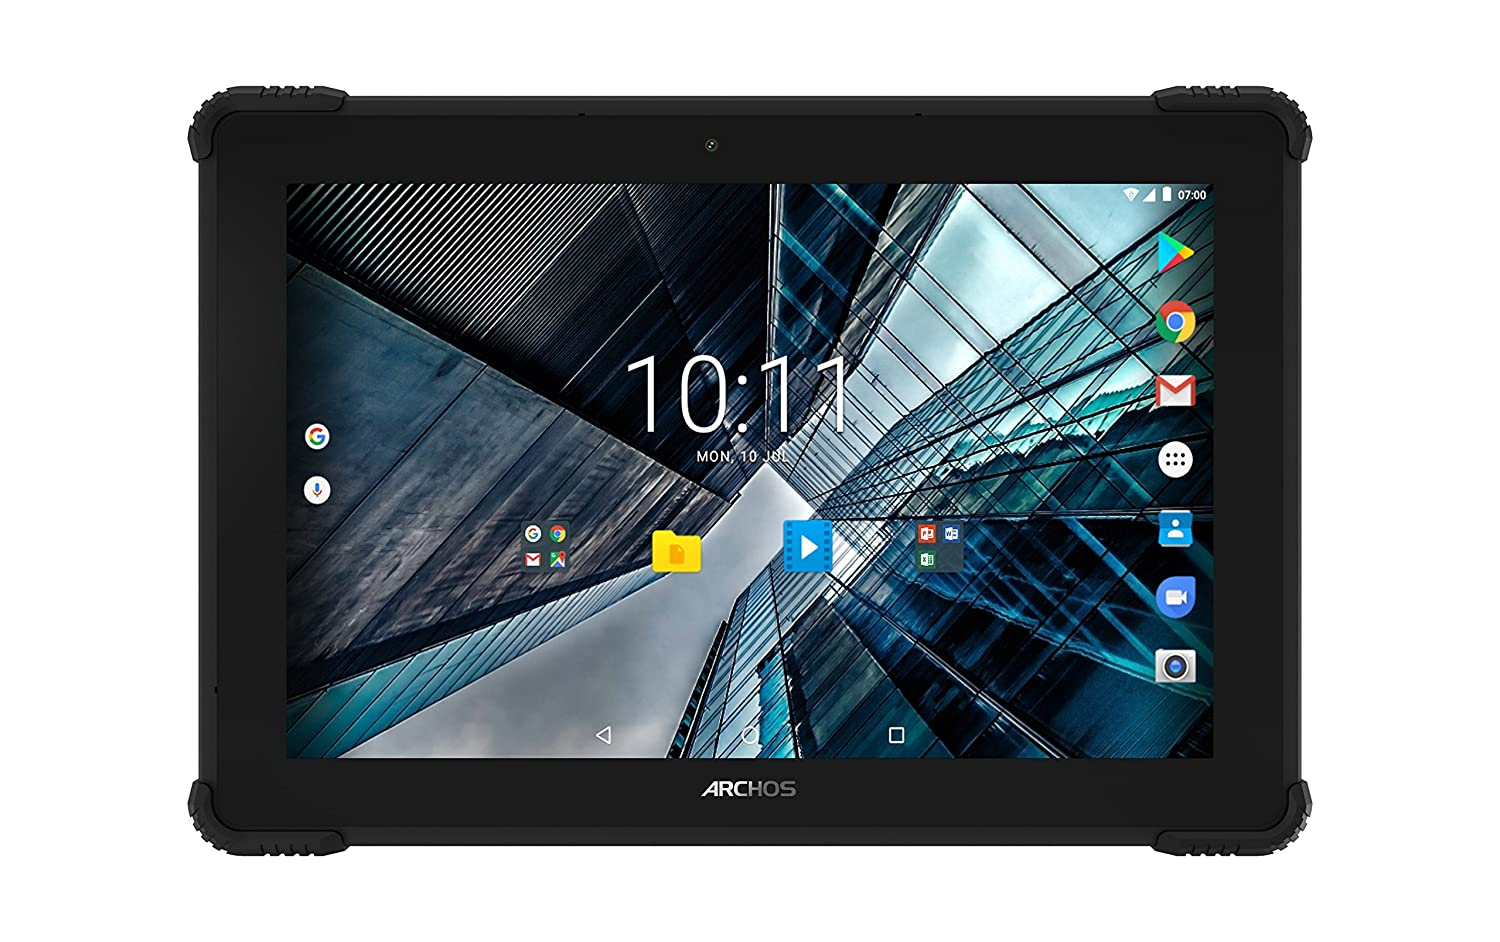 ARCHOS FIREHD DRIVERS FOR WINDOWS XP